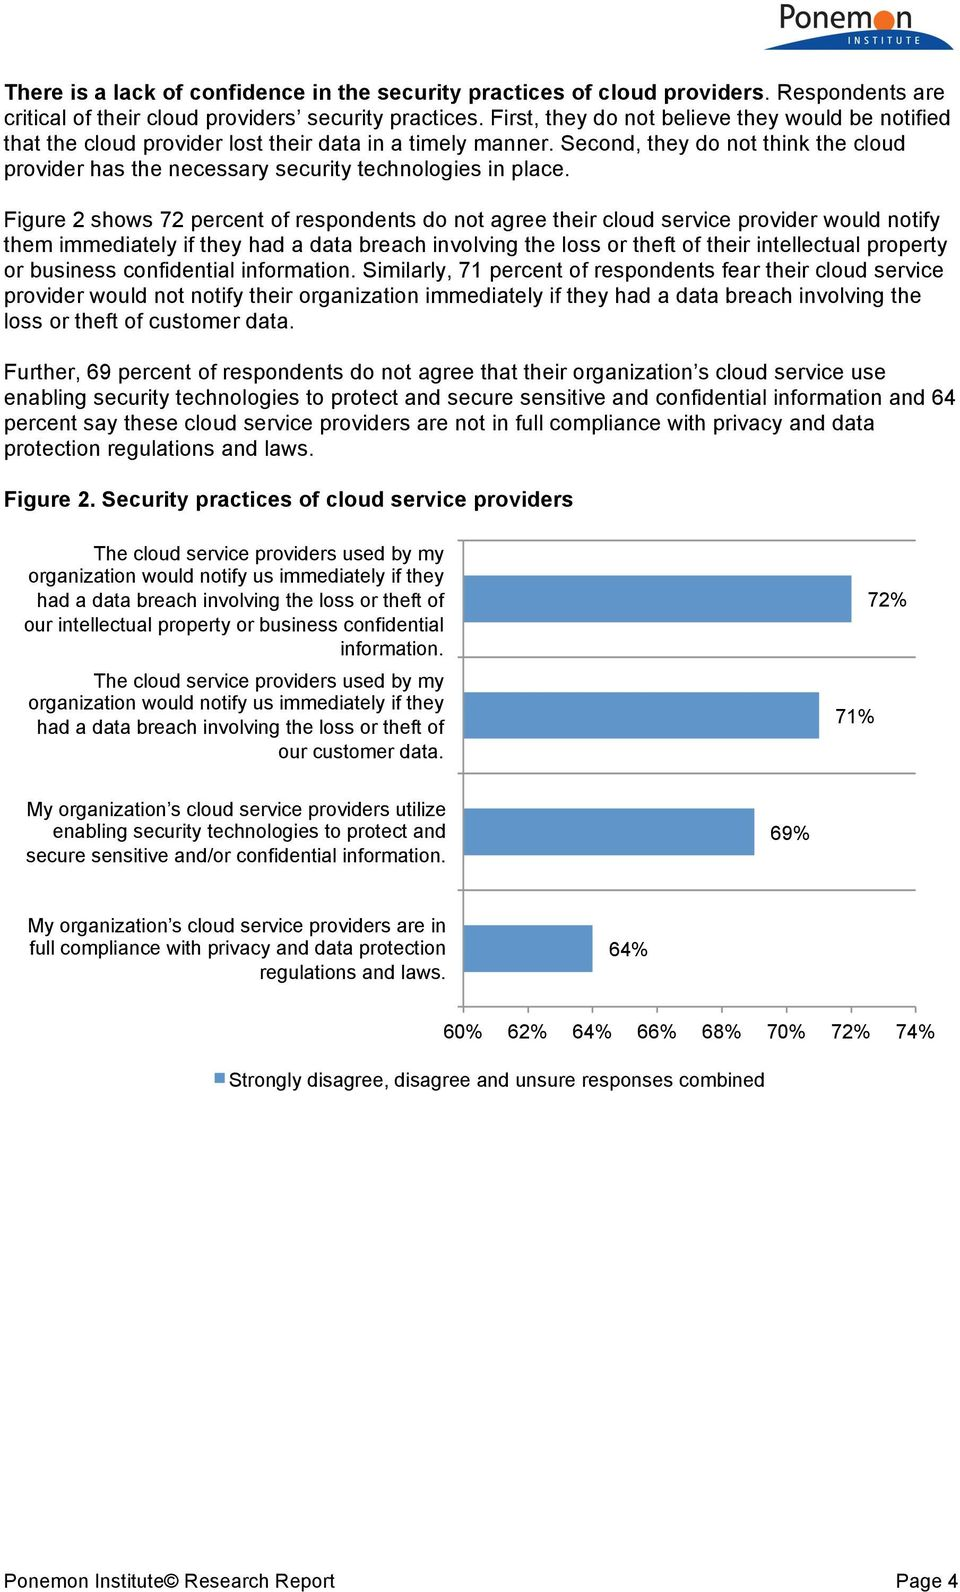 Second, they do not think the cloud provider has the necessary security technologies in place.